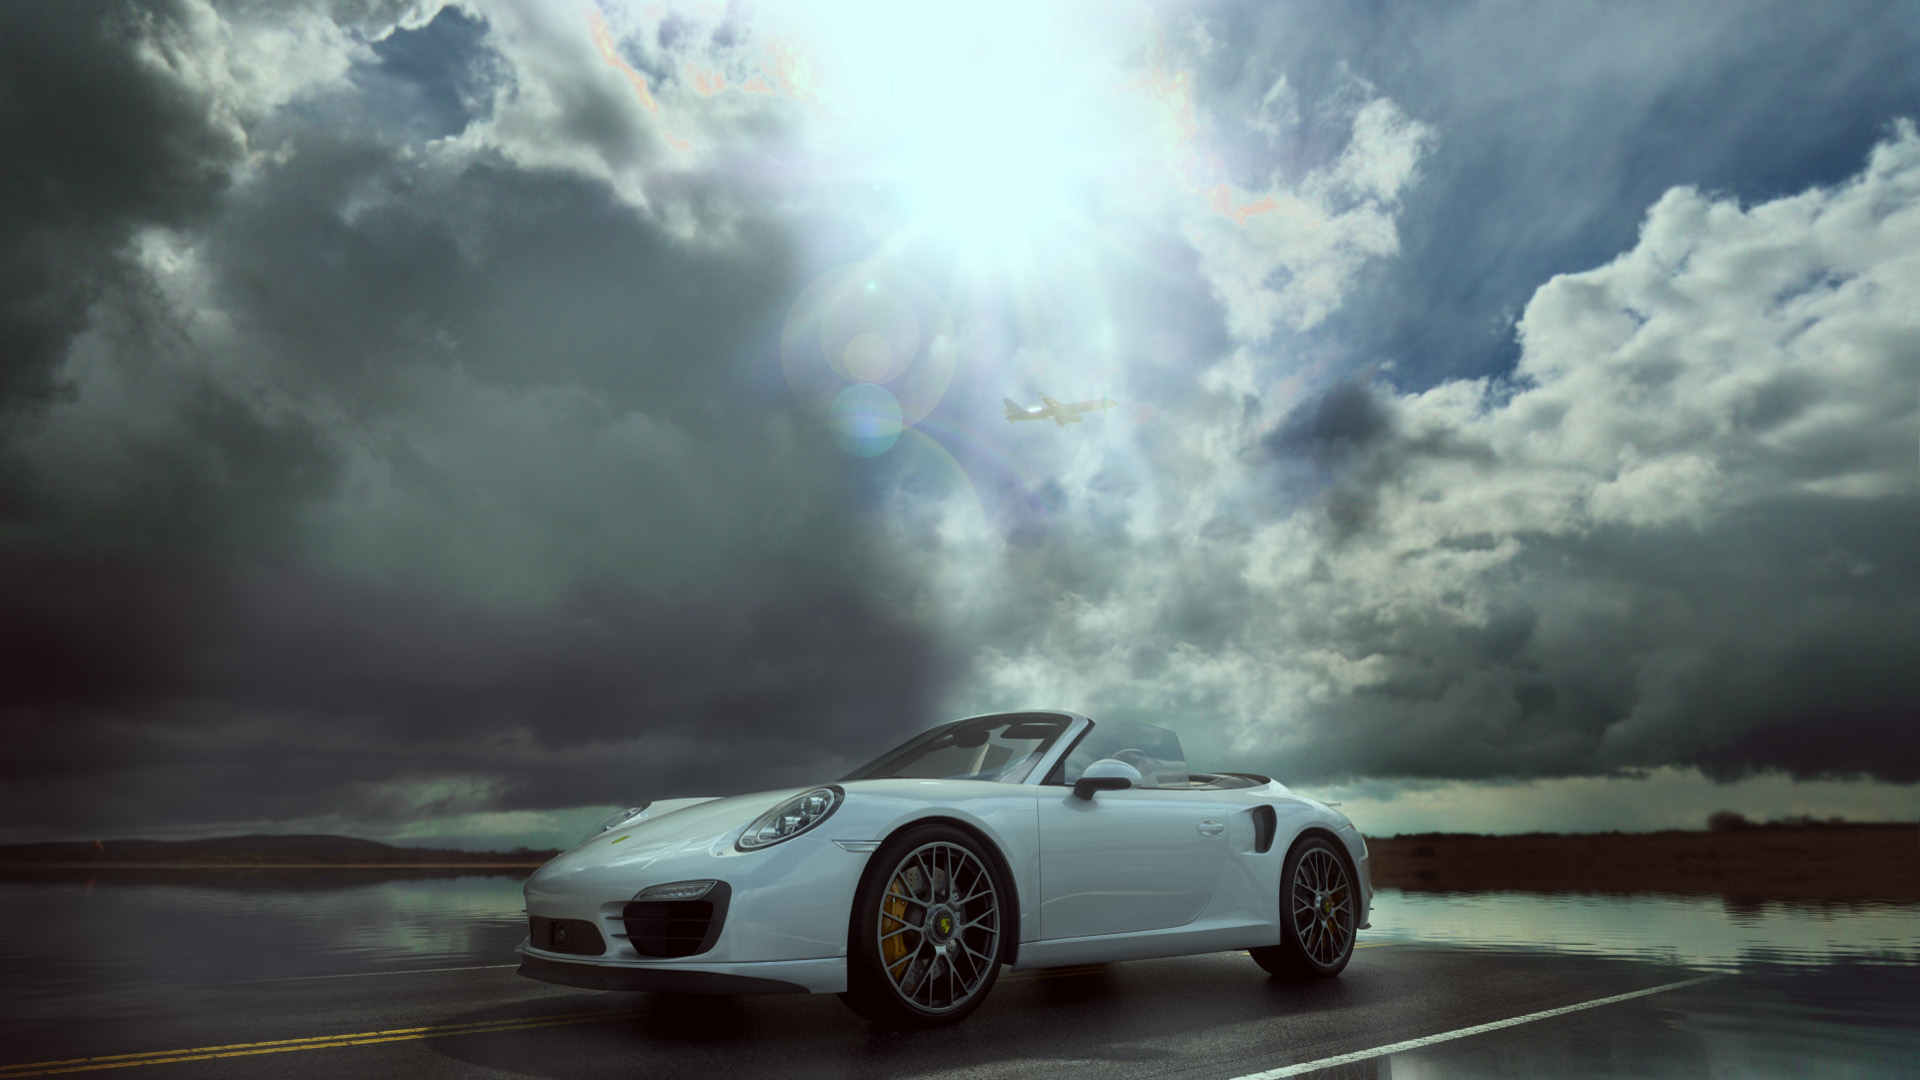 Porsche Turbo Cabriolet 2014 after rain scene